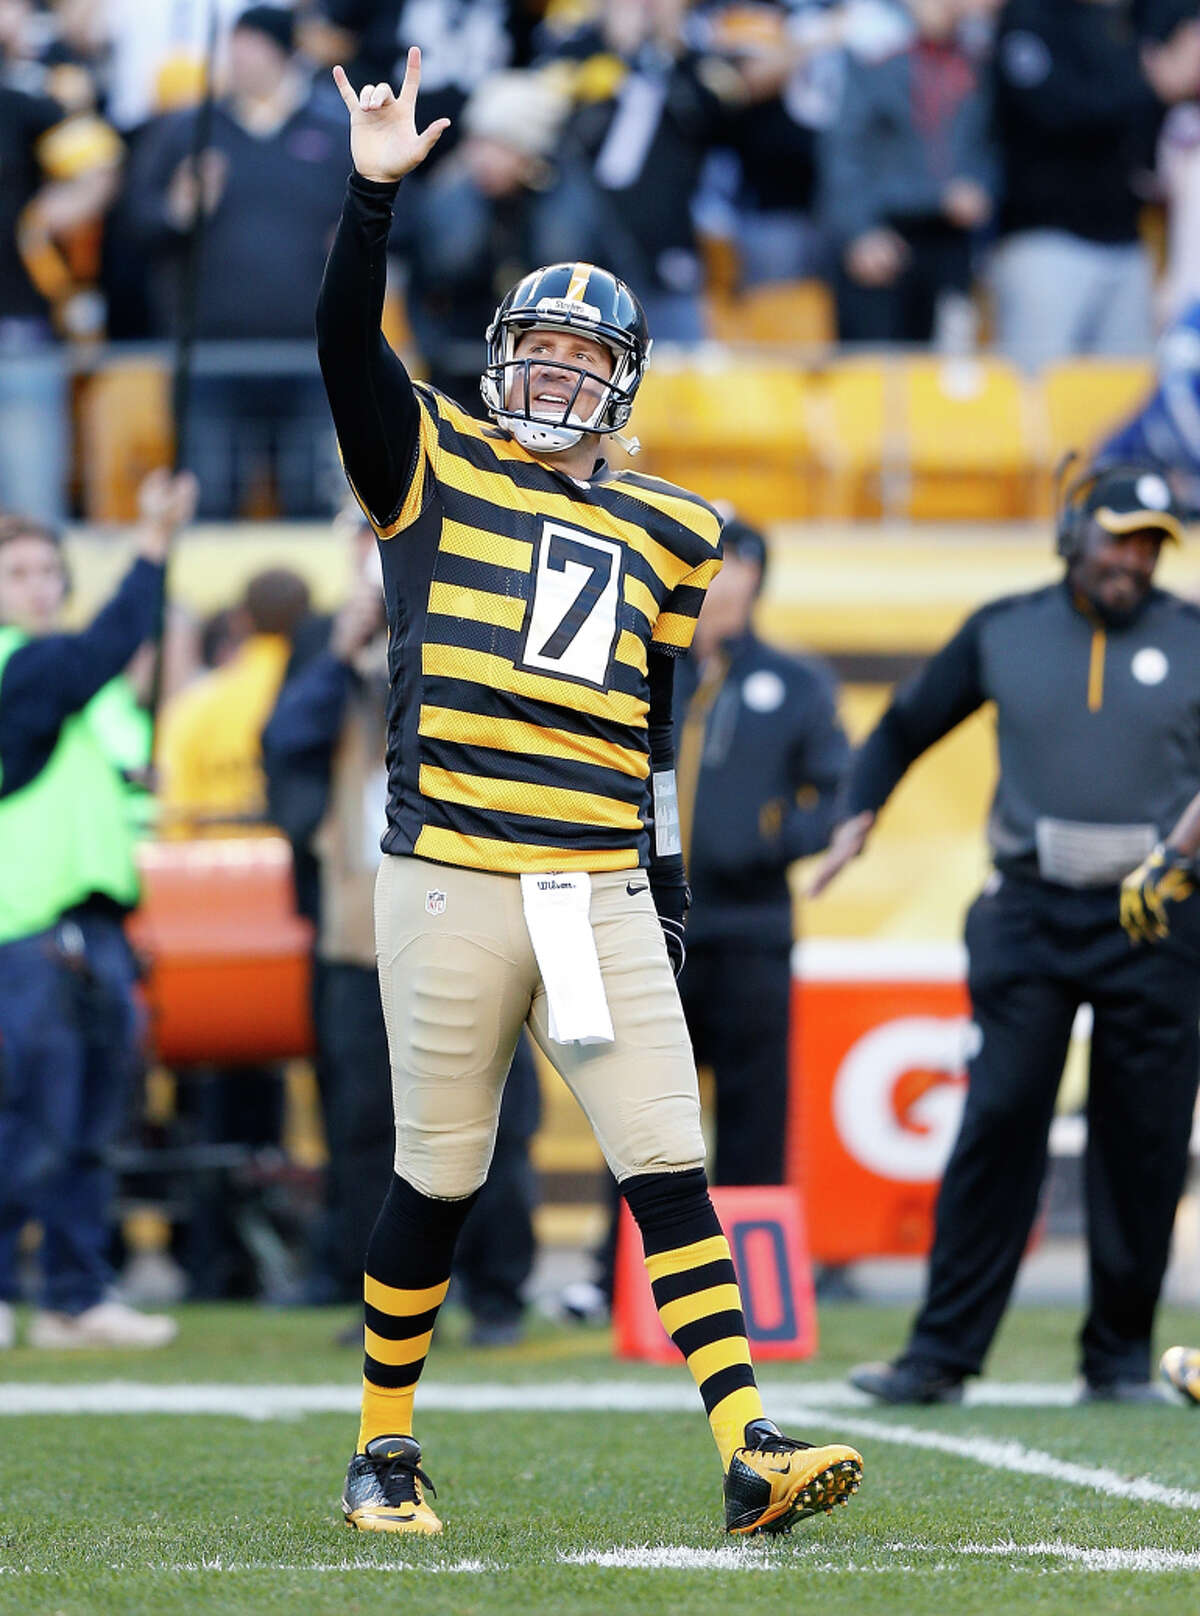 Ben Roethlisberger's 522 yards passing against the Colts on Sunday tied him for fourth-best all time.